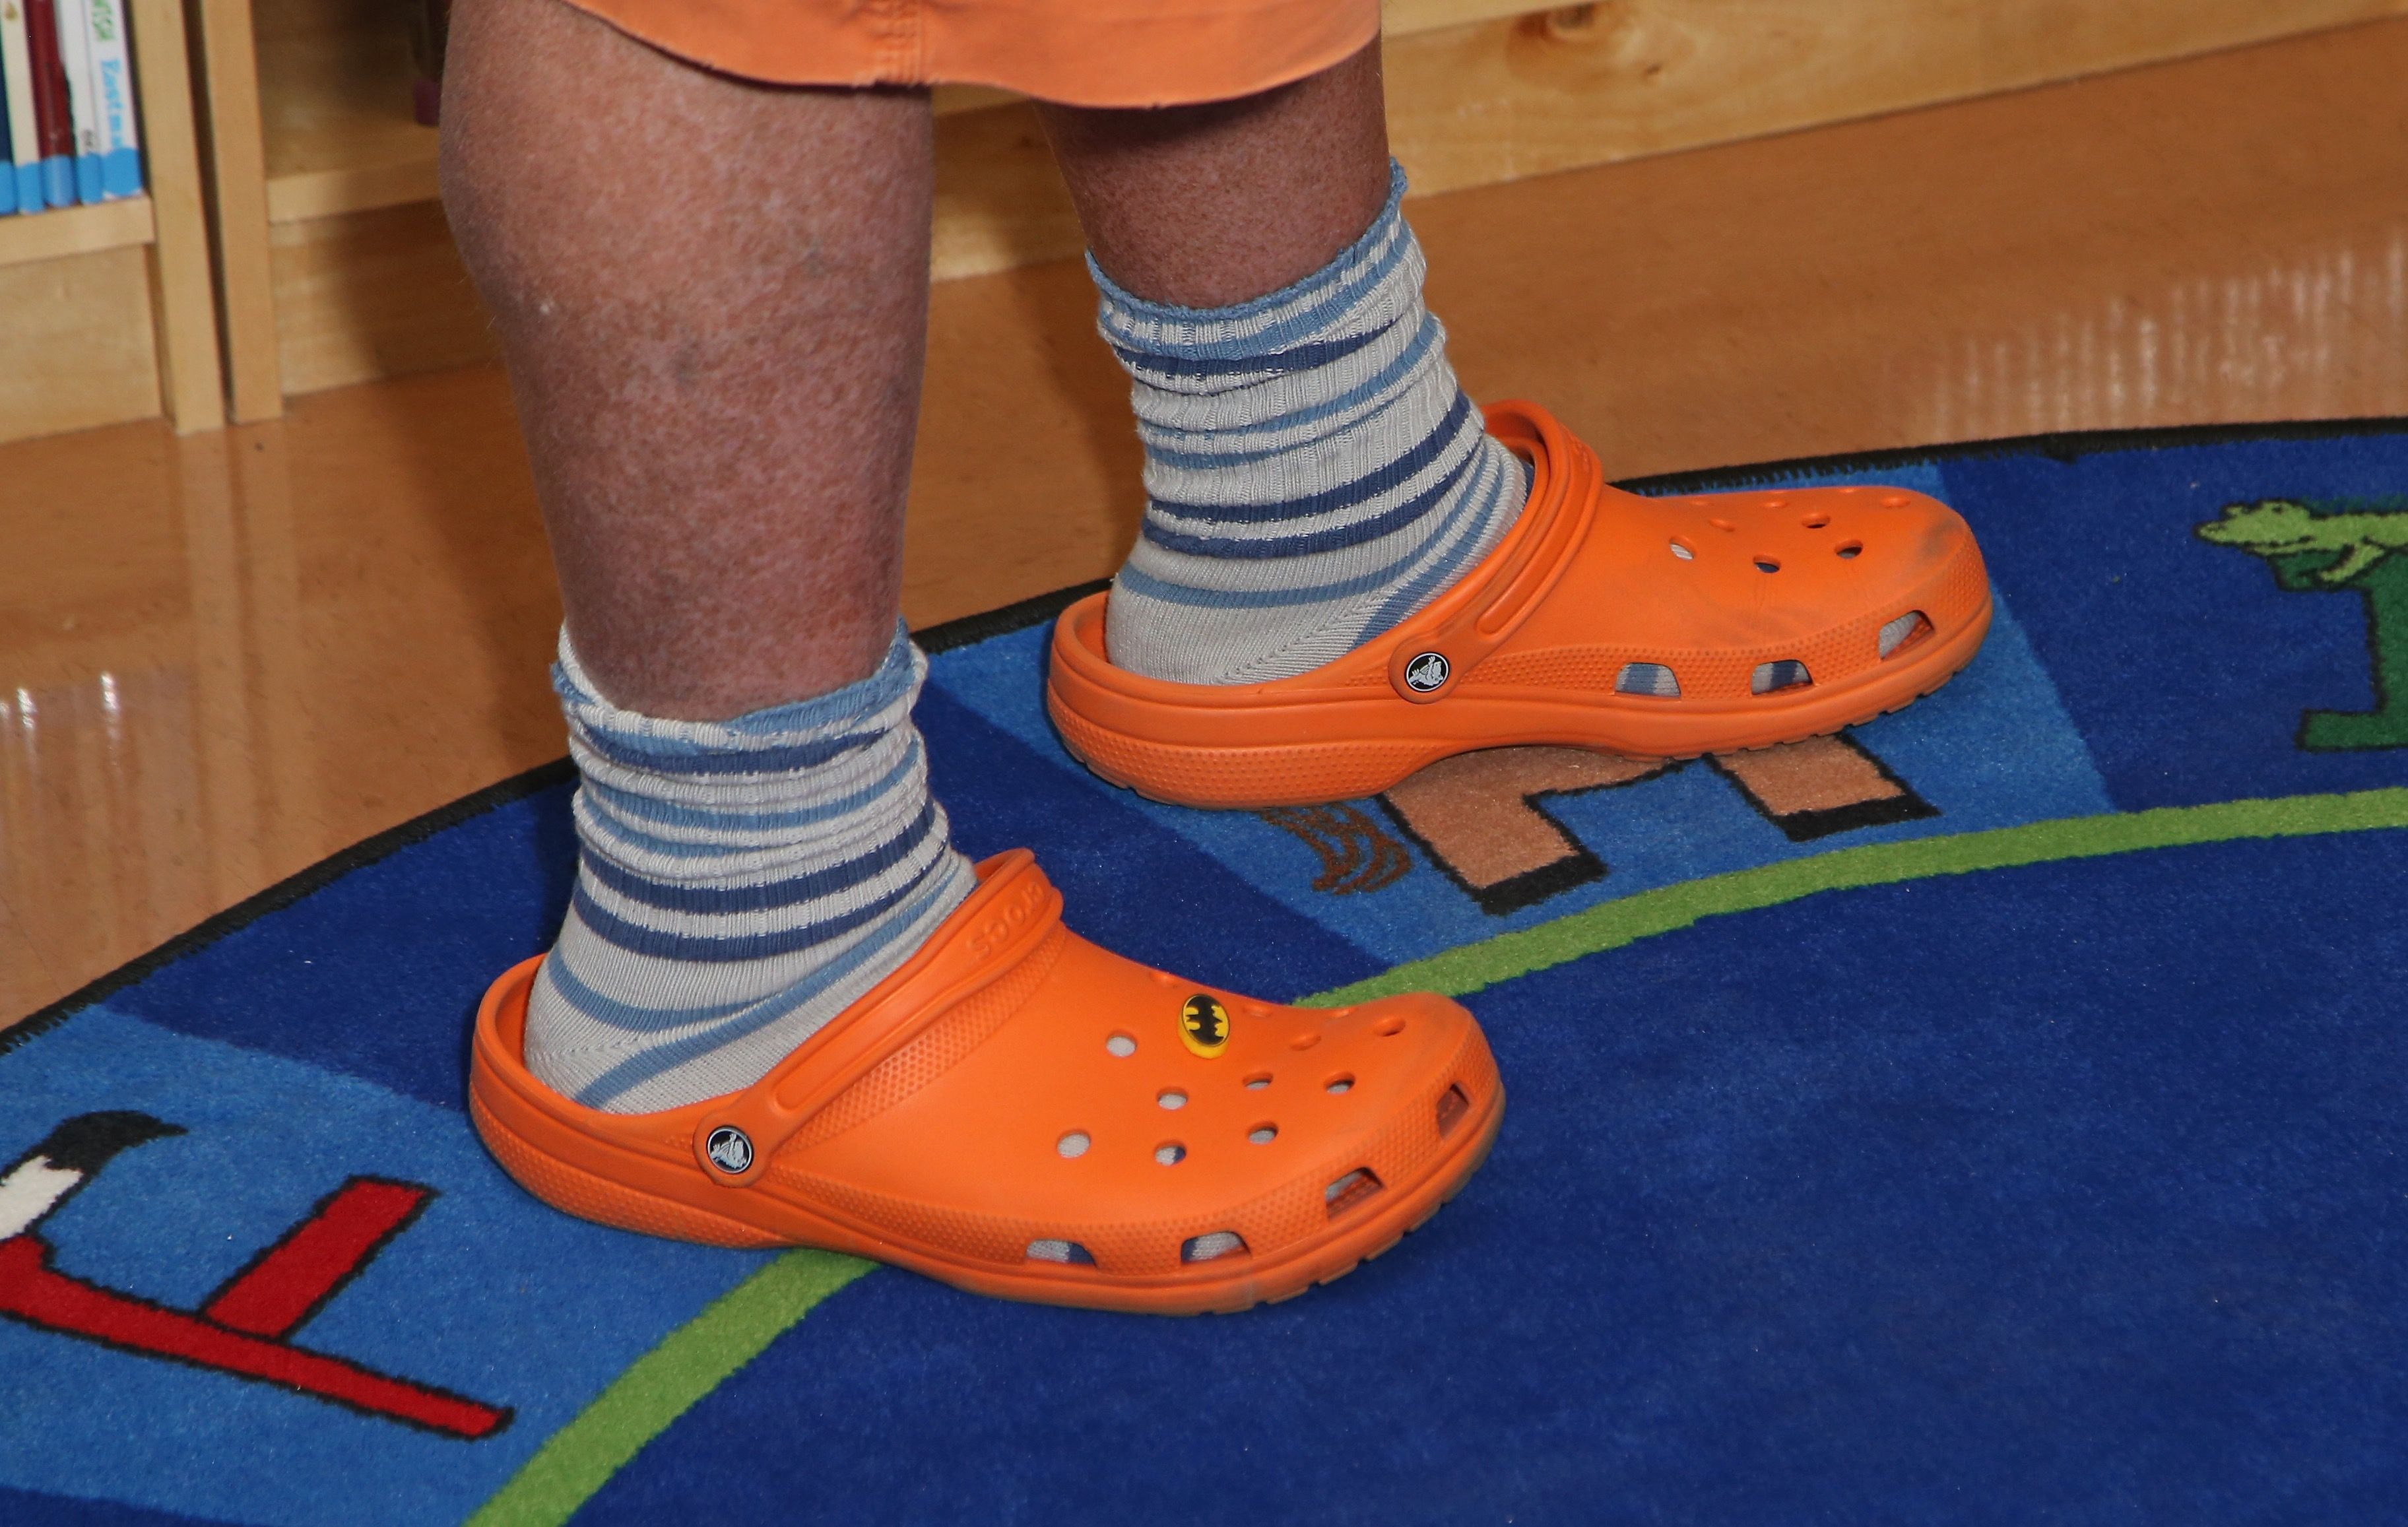 This is Mario Batali in crocs. Don't be Mario Batali.